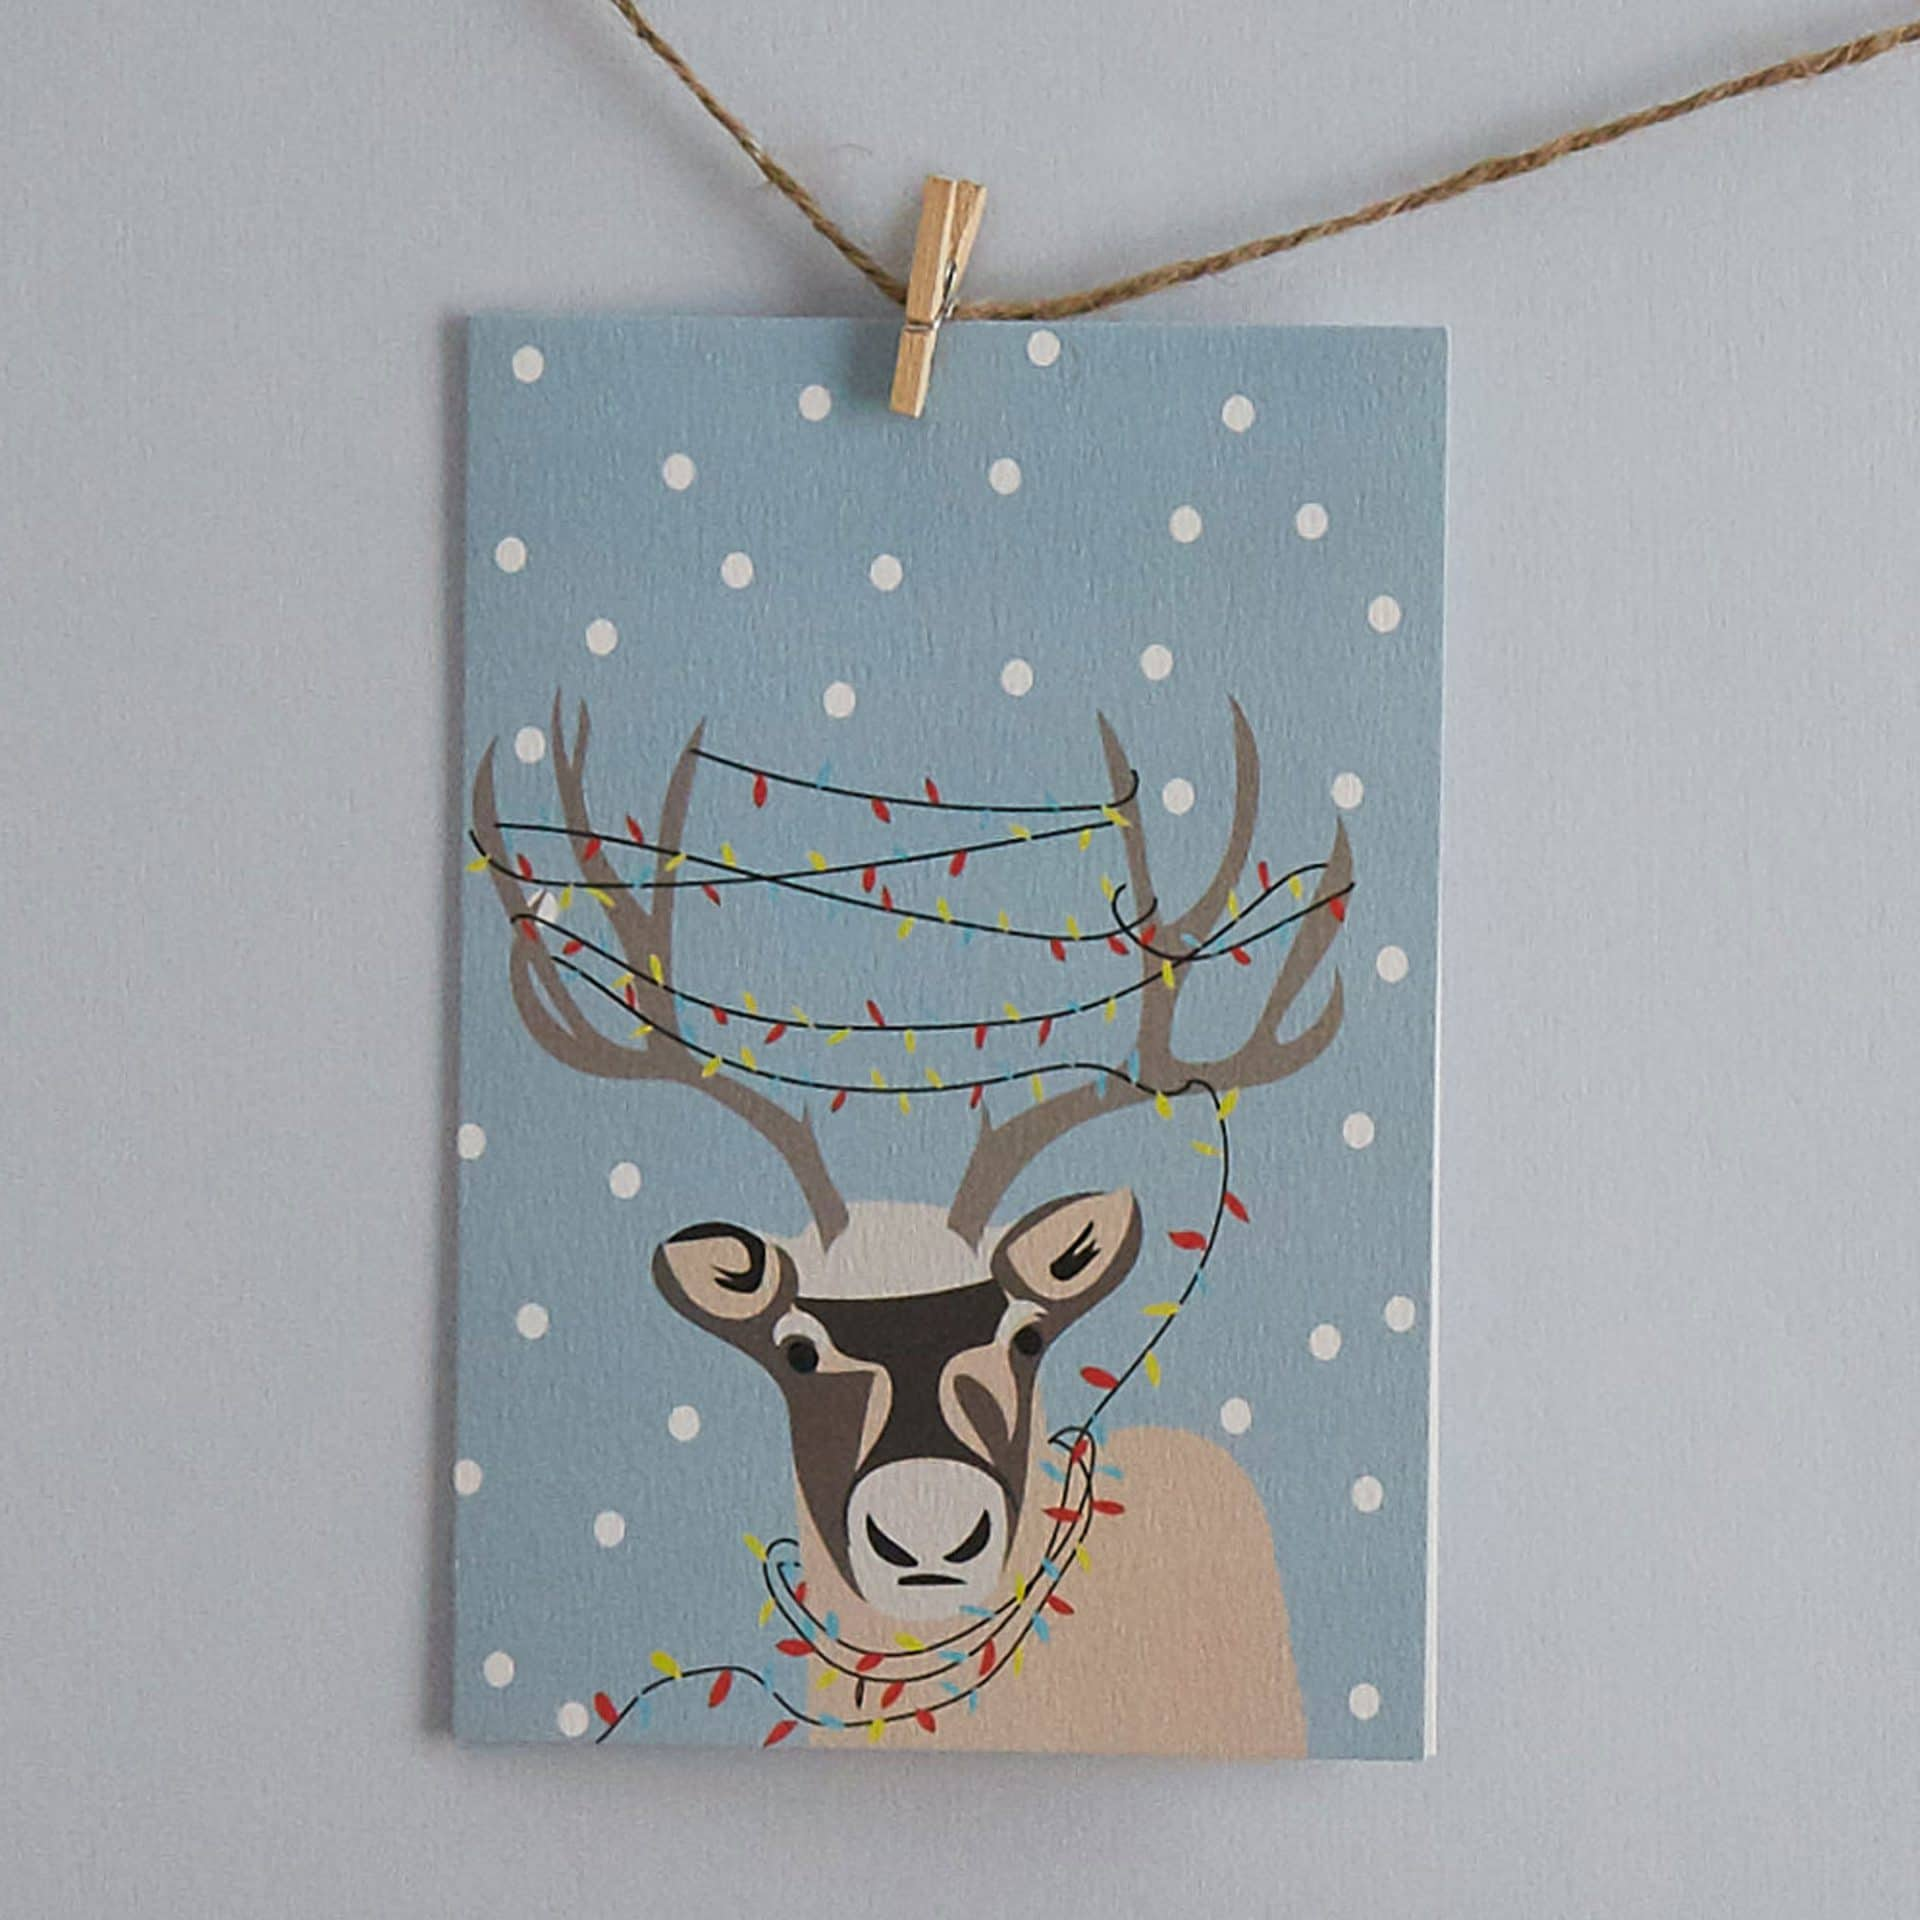 Christmas Card Luxury Designer Personalised Message Sustainable Environmentally Friendly FSC Paper Plastic Free - Lorna Syson designs Christmas card with reindeer